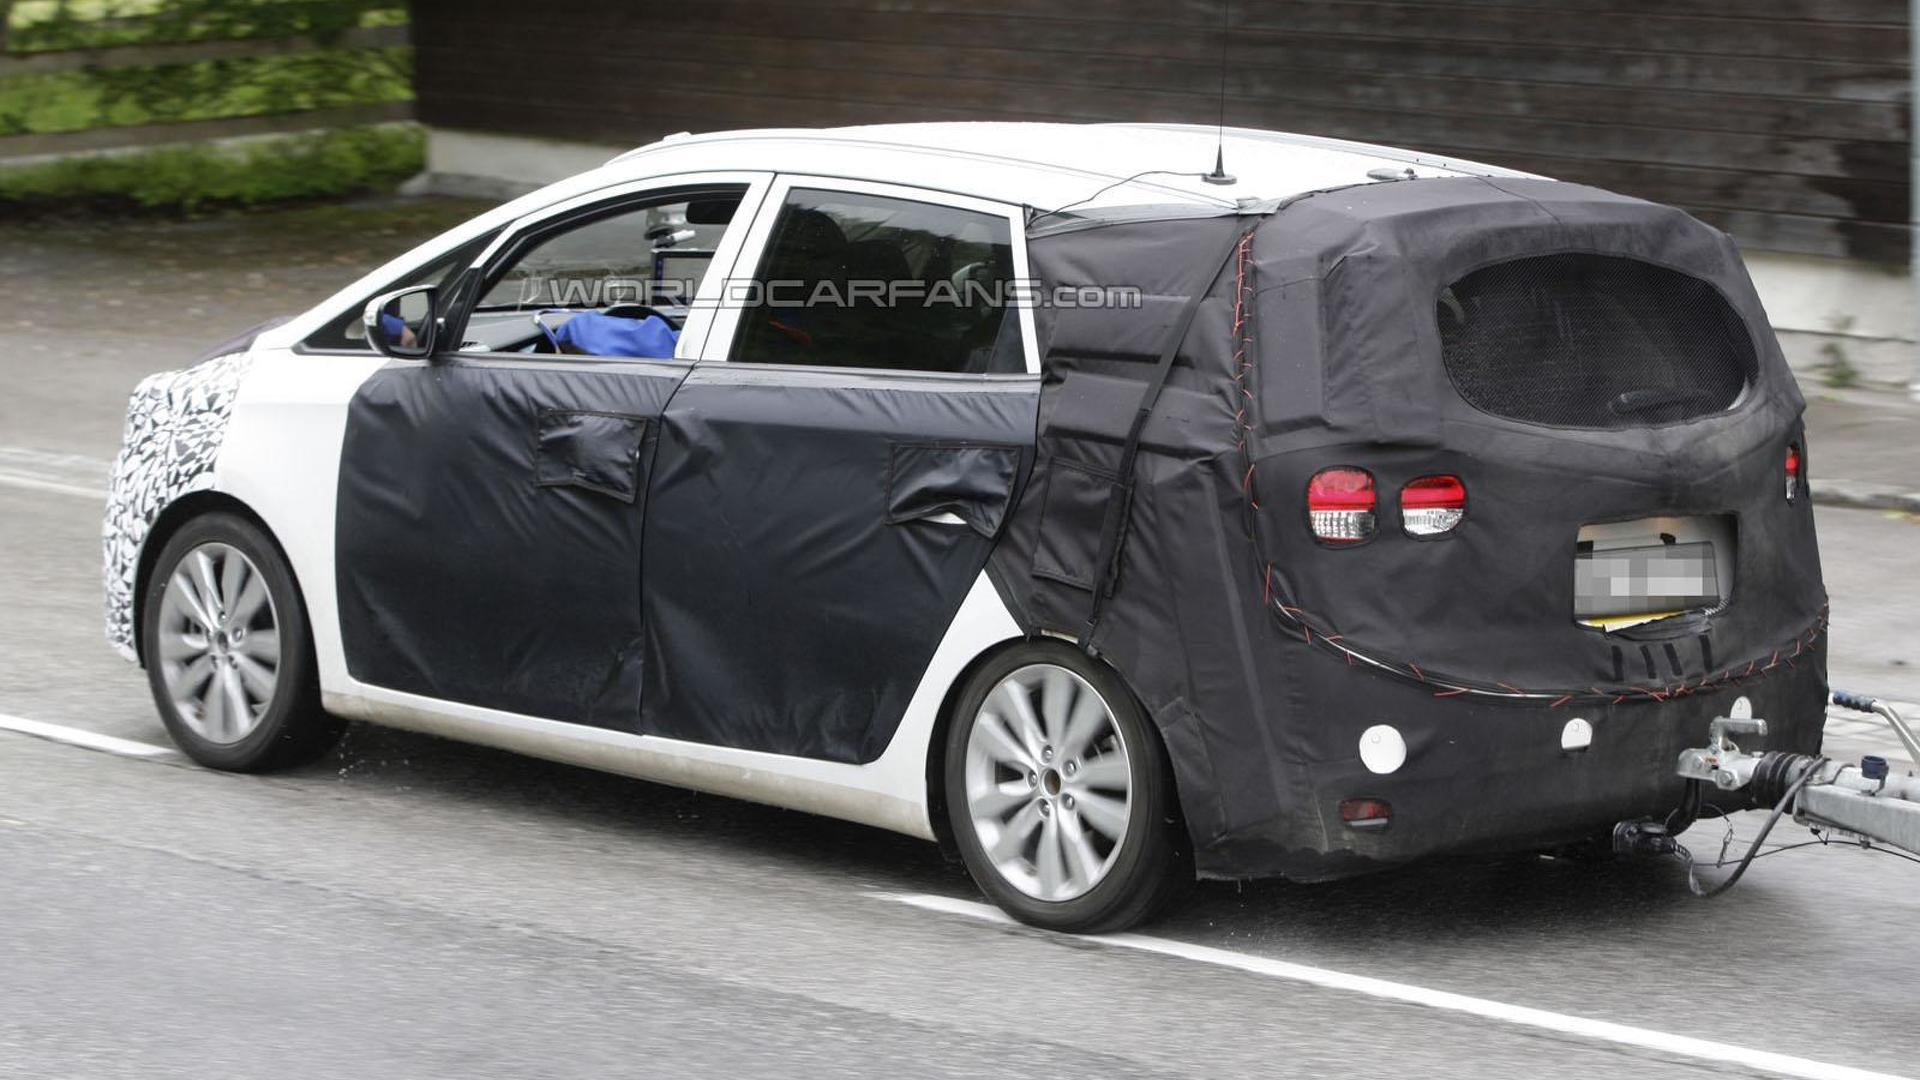 2013 Kia Rondo spied with less disguise